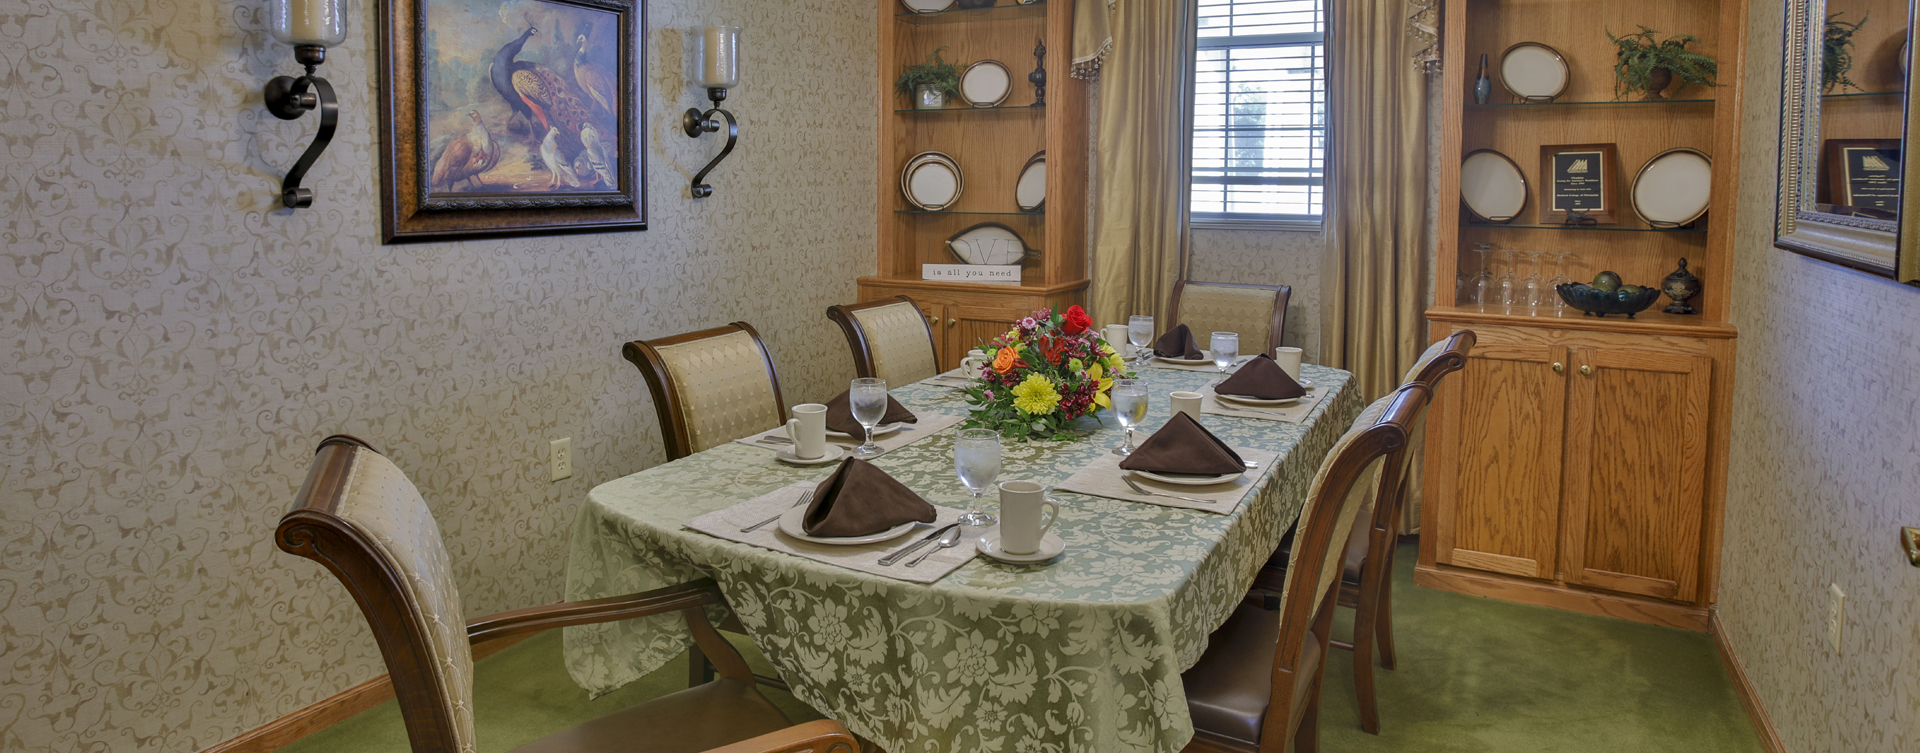 Have fun with themed and holiday meals in the private dining room at Bickford of Champaign